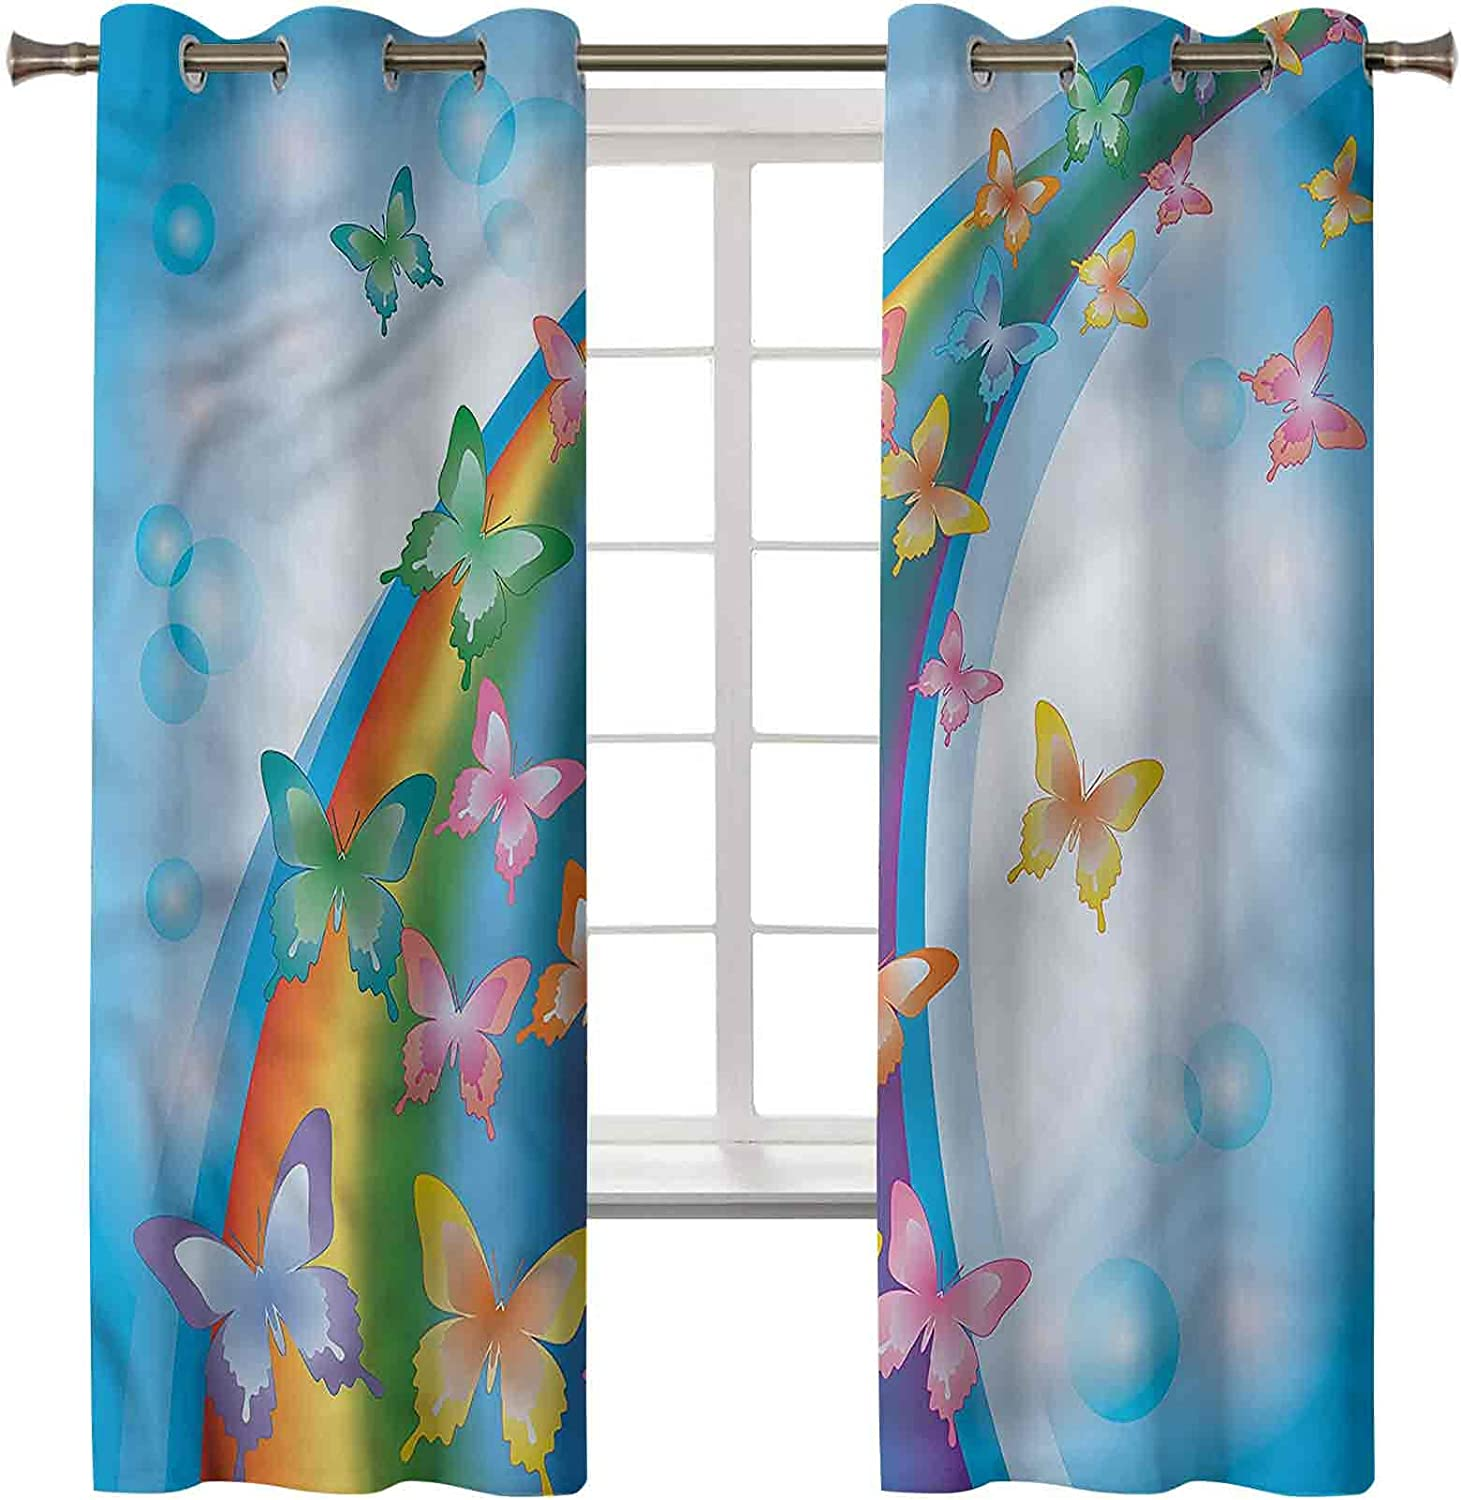 Butterfly Thermal Insulated Curtains Cheap mail order specialty store Set of x In 84 42 Panels 2 Max 83% OFF